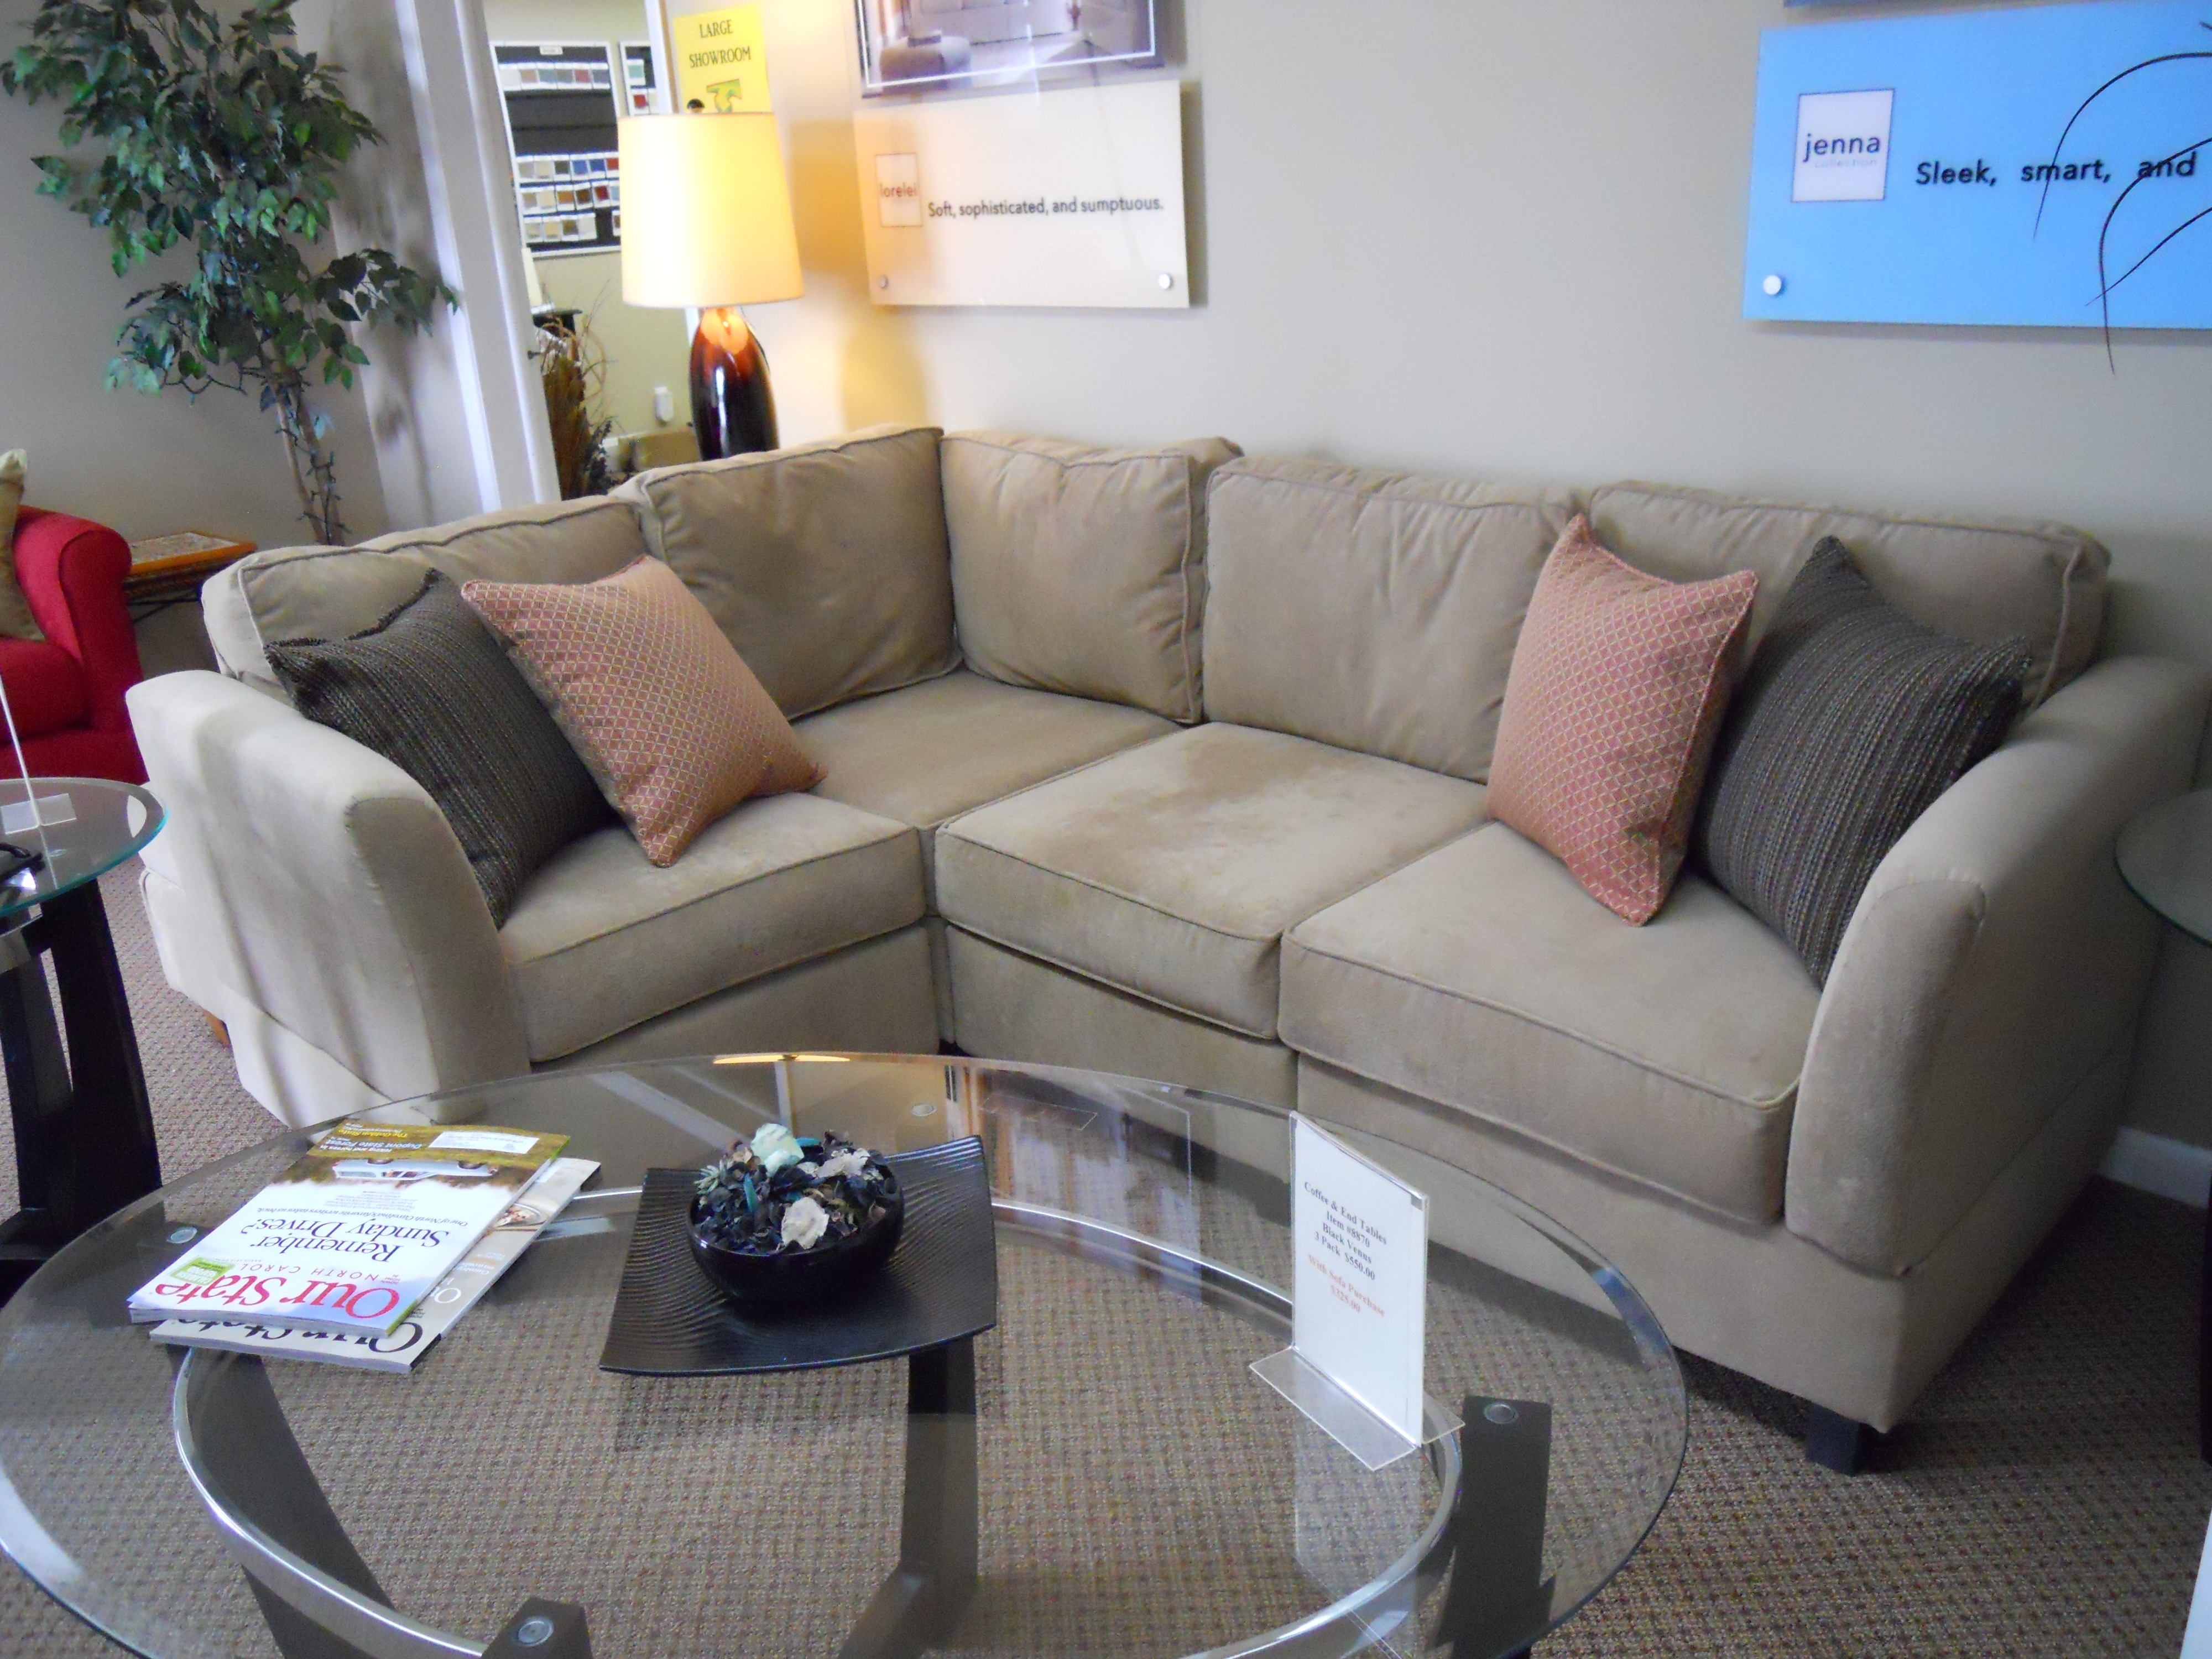 Modular Sectional Sofas Small Scale • Sectional Sofa With Regard To Small Modular Sectional Sofas (Image 7 of 10)